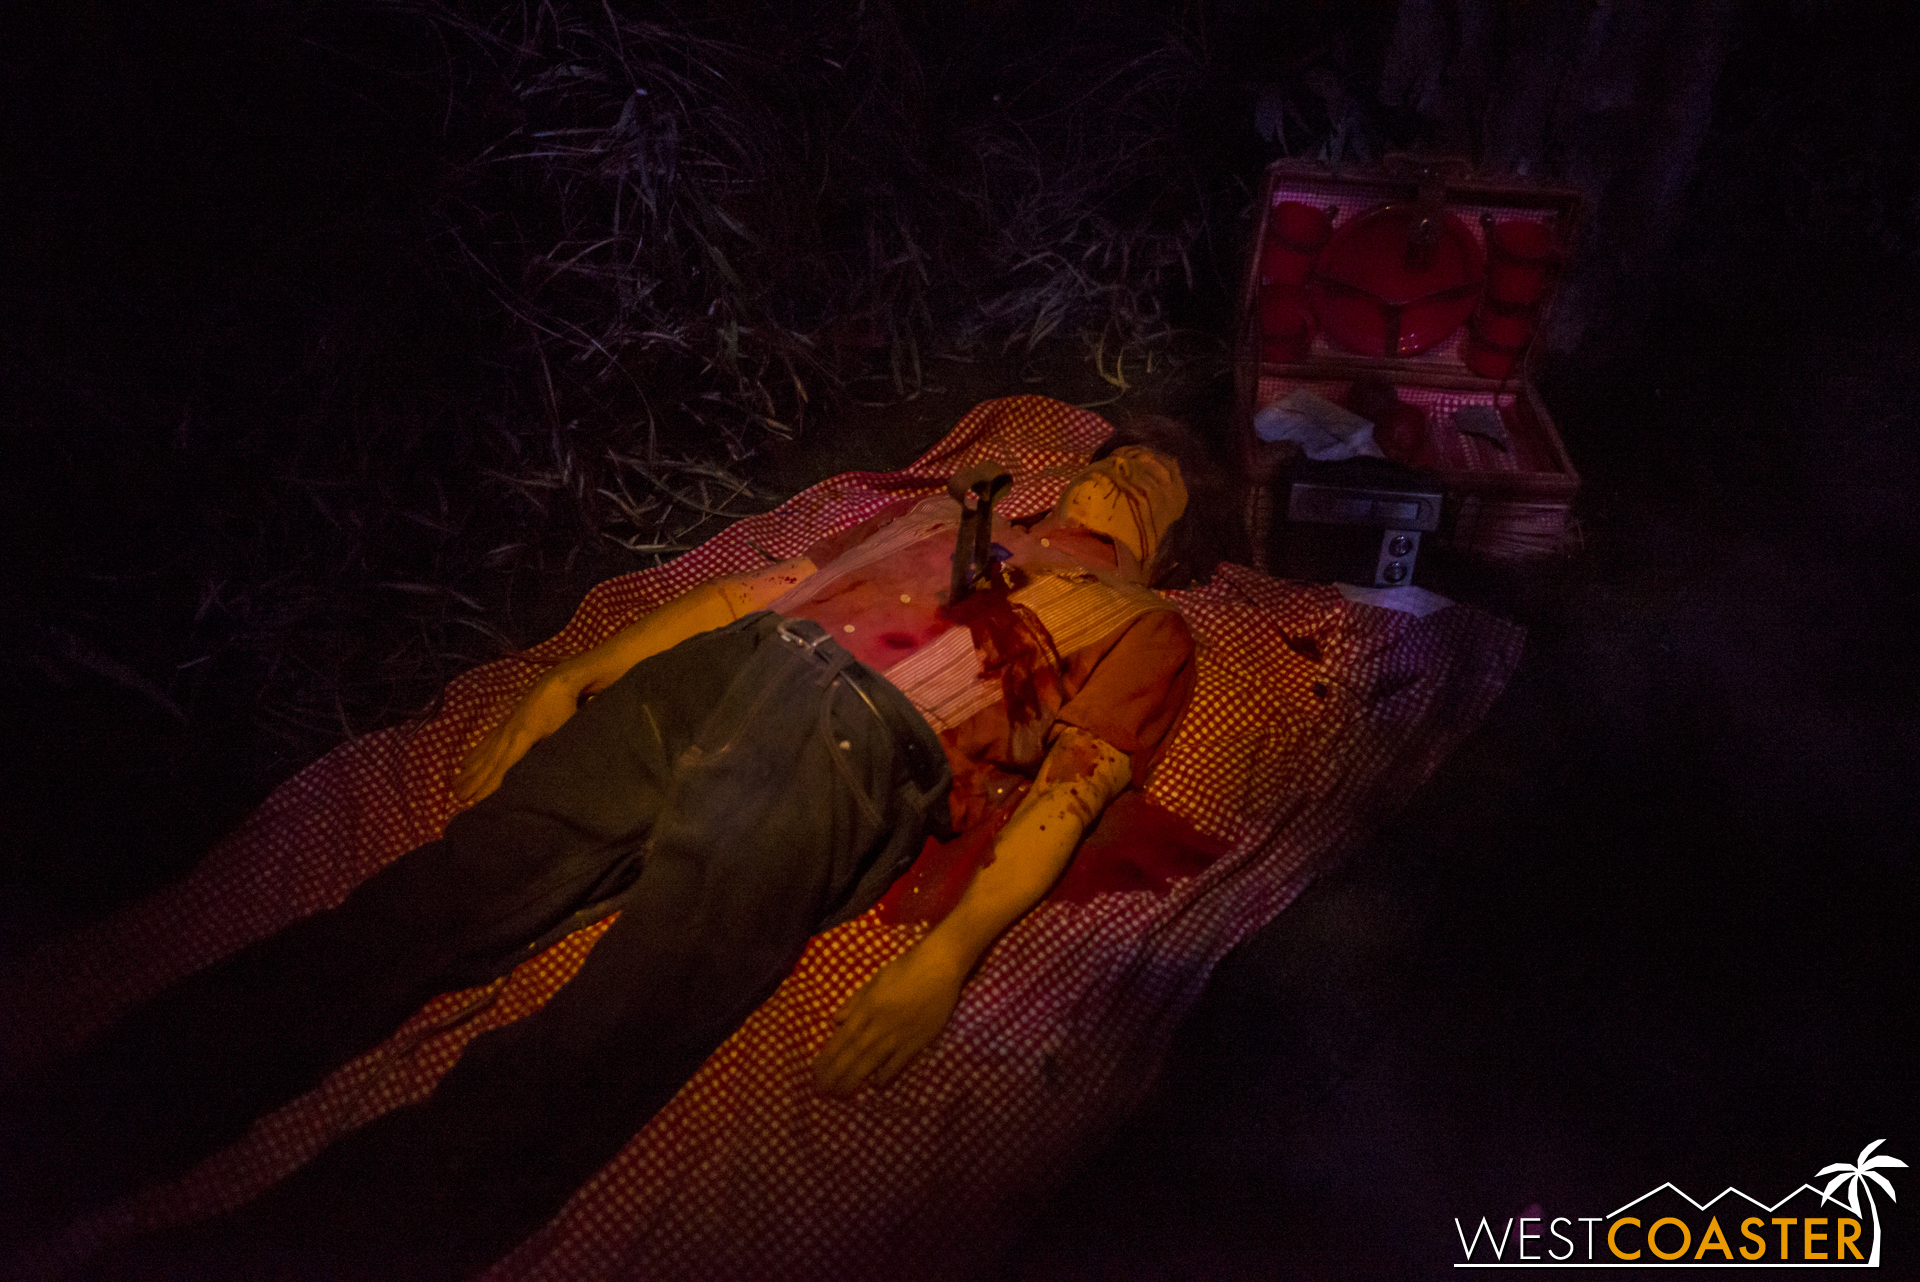 Onto Freak Show, where we quickly come upon Twisty's first victim. Well, first in the show.